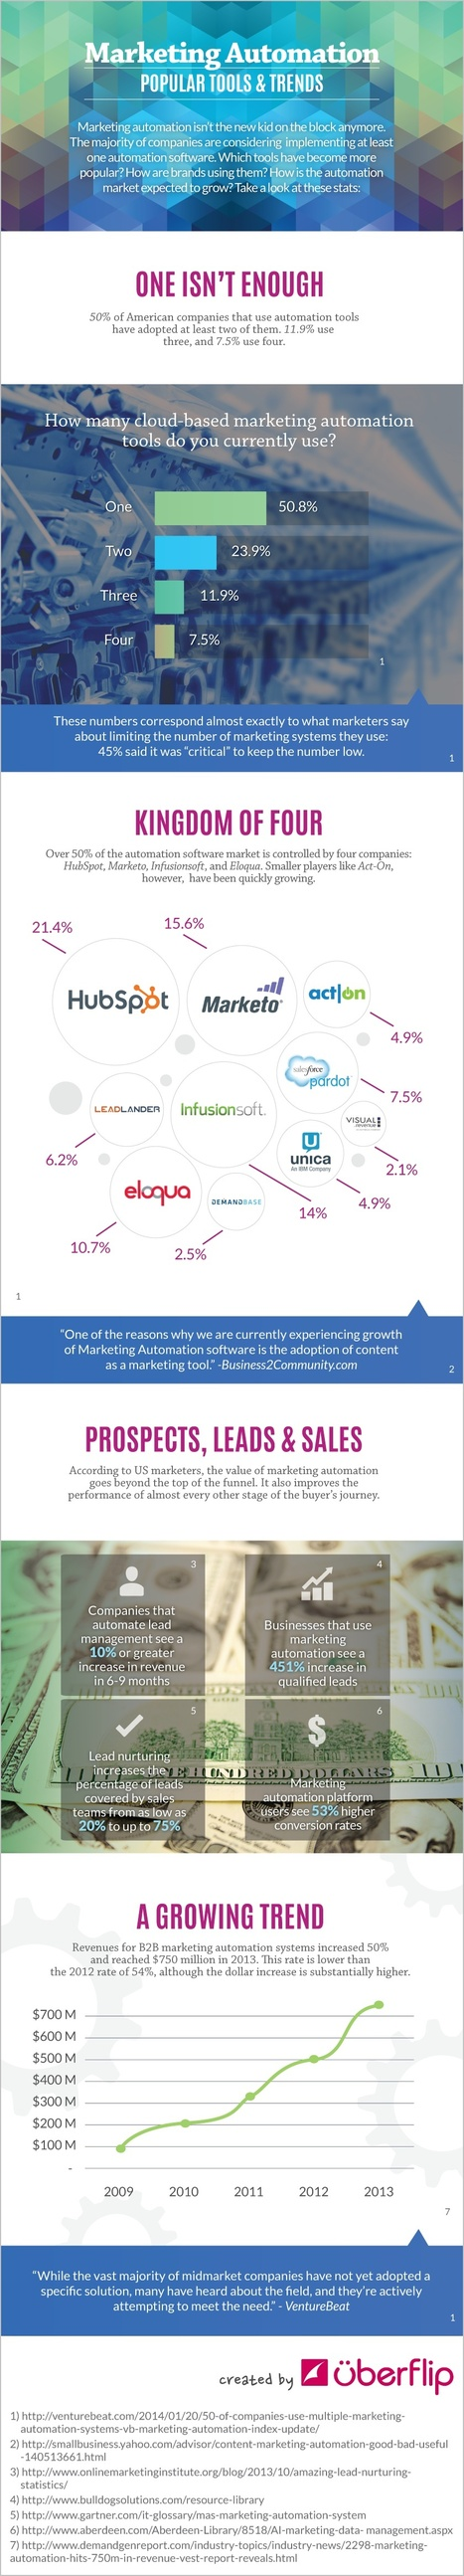 How Marketing Automation Is Taking Over [INFOGRAPHIC] | MarketingHits | Scoop.it